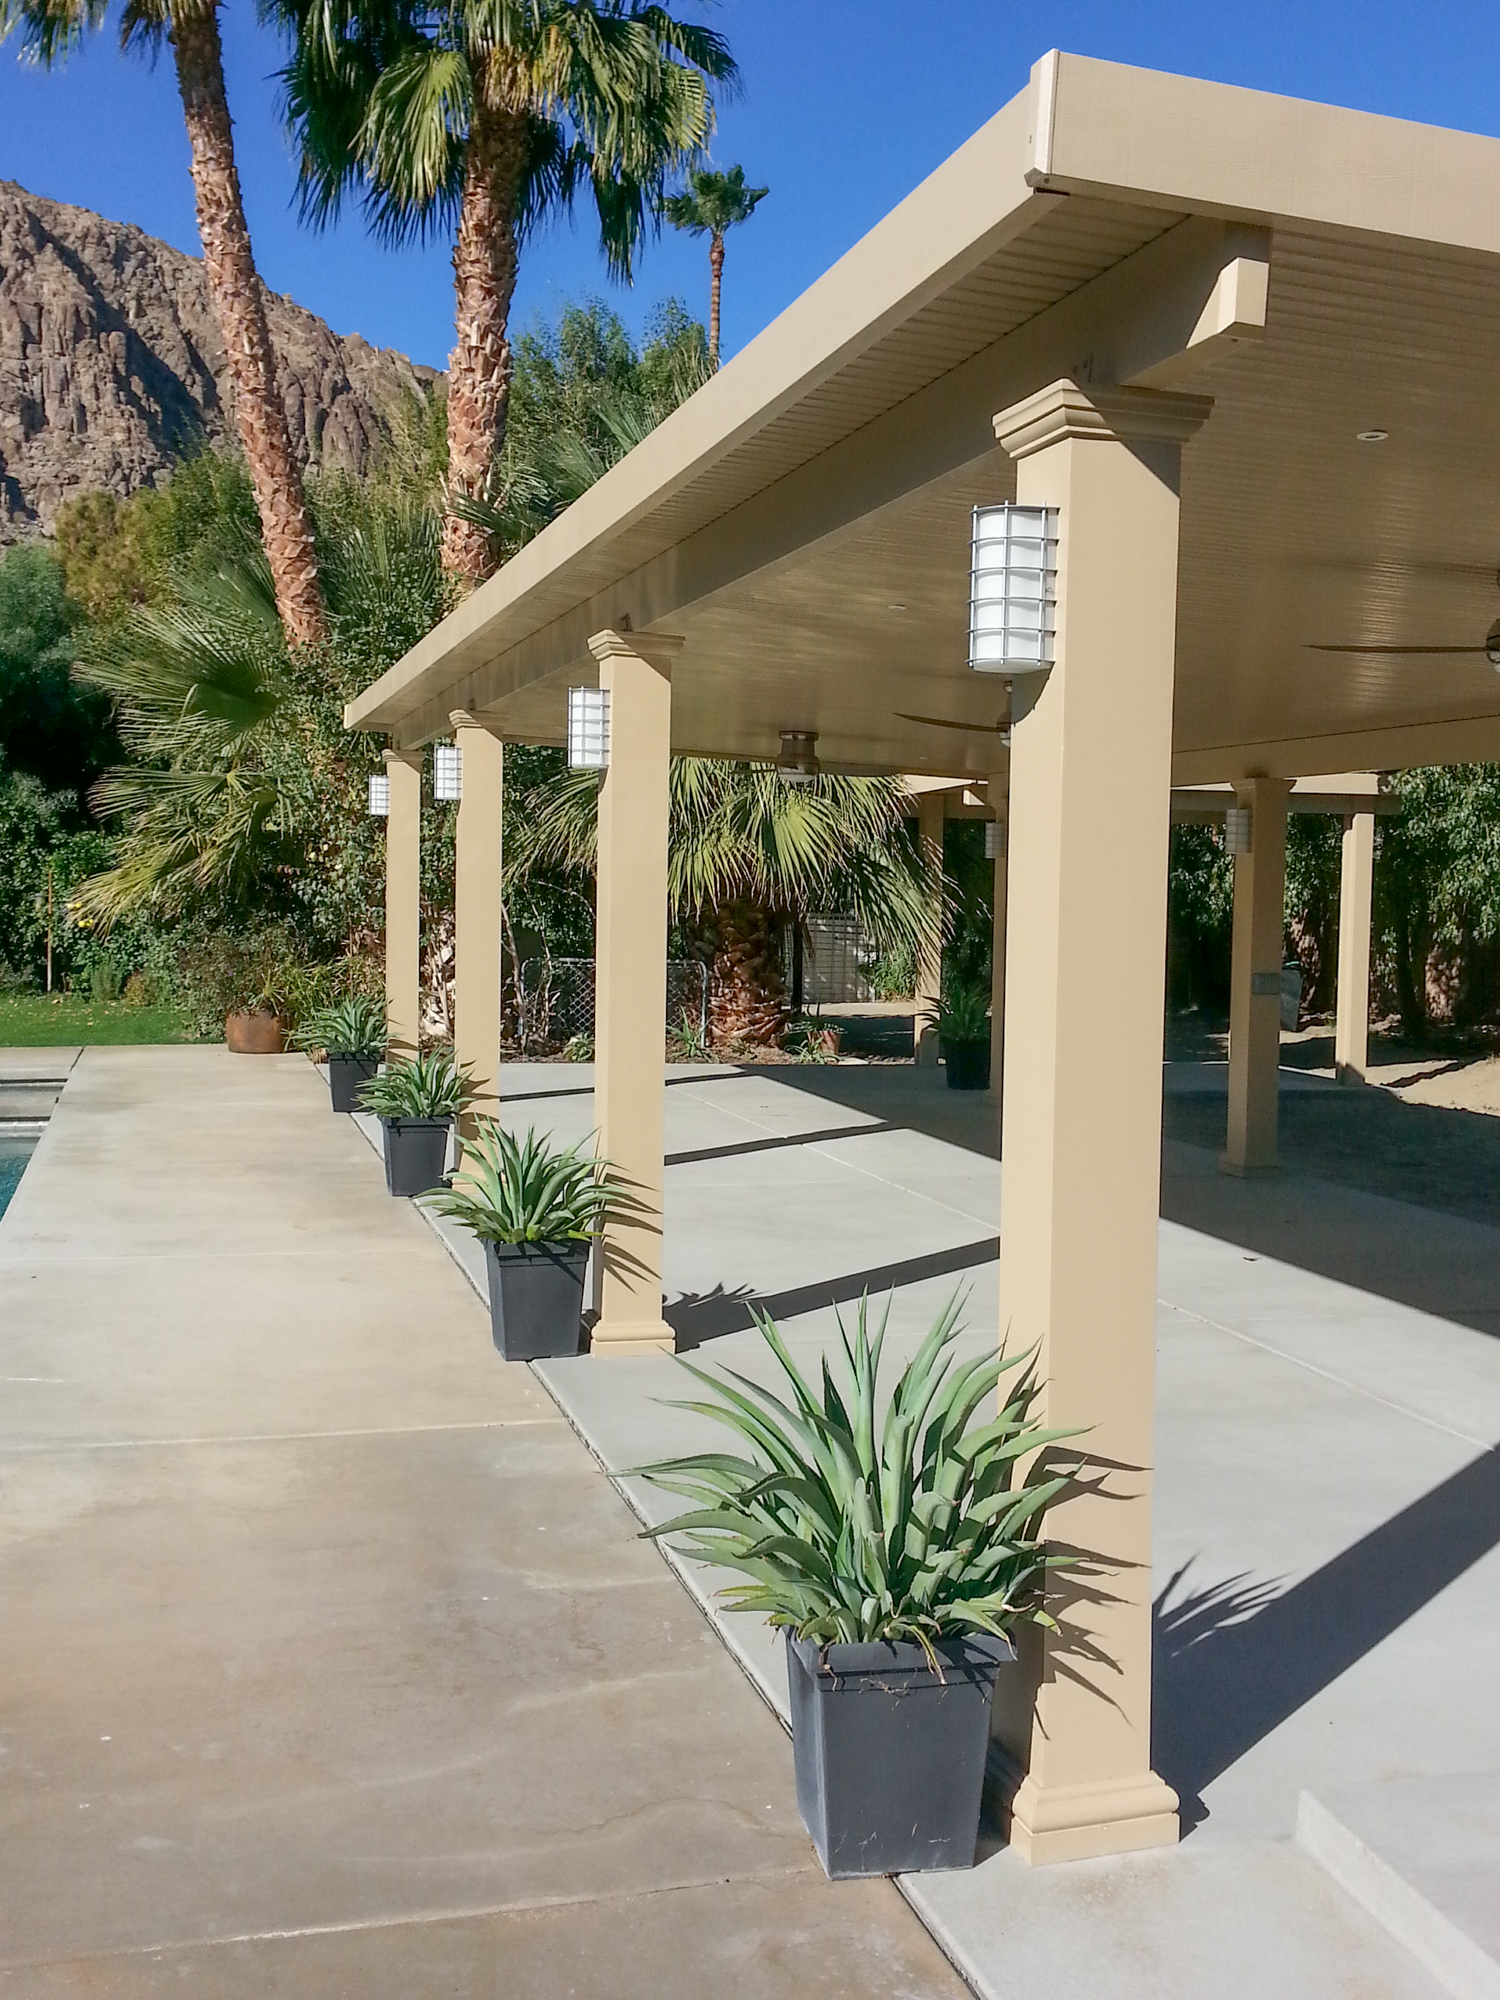 Patio Cover Designs| Patio Ideas | Valley Patios | Palm ... on Backyard Patio Cover Ideas  id=95116